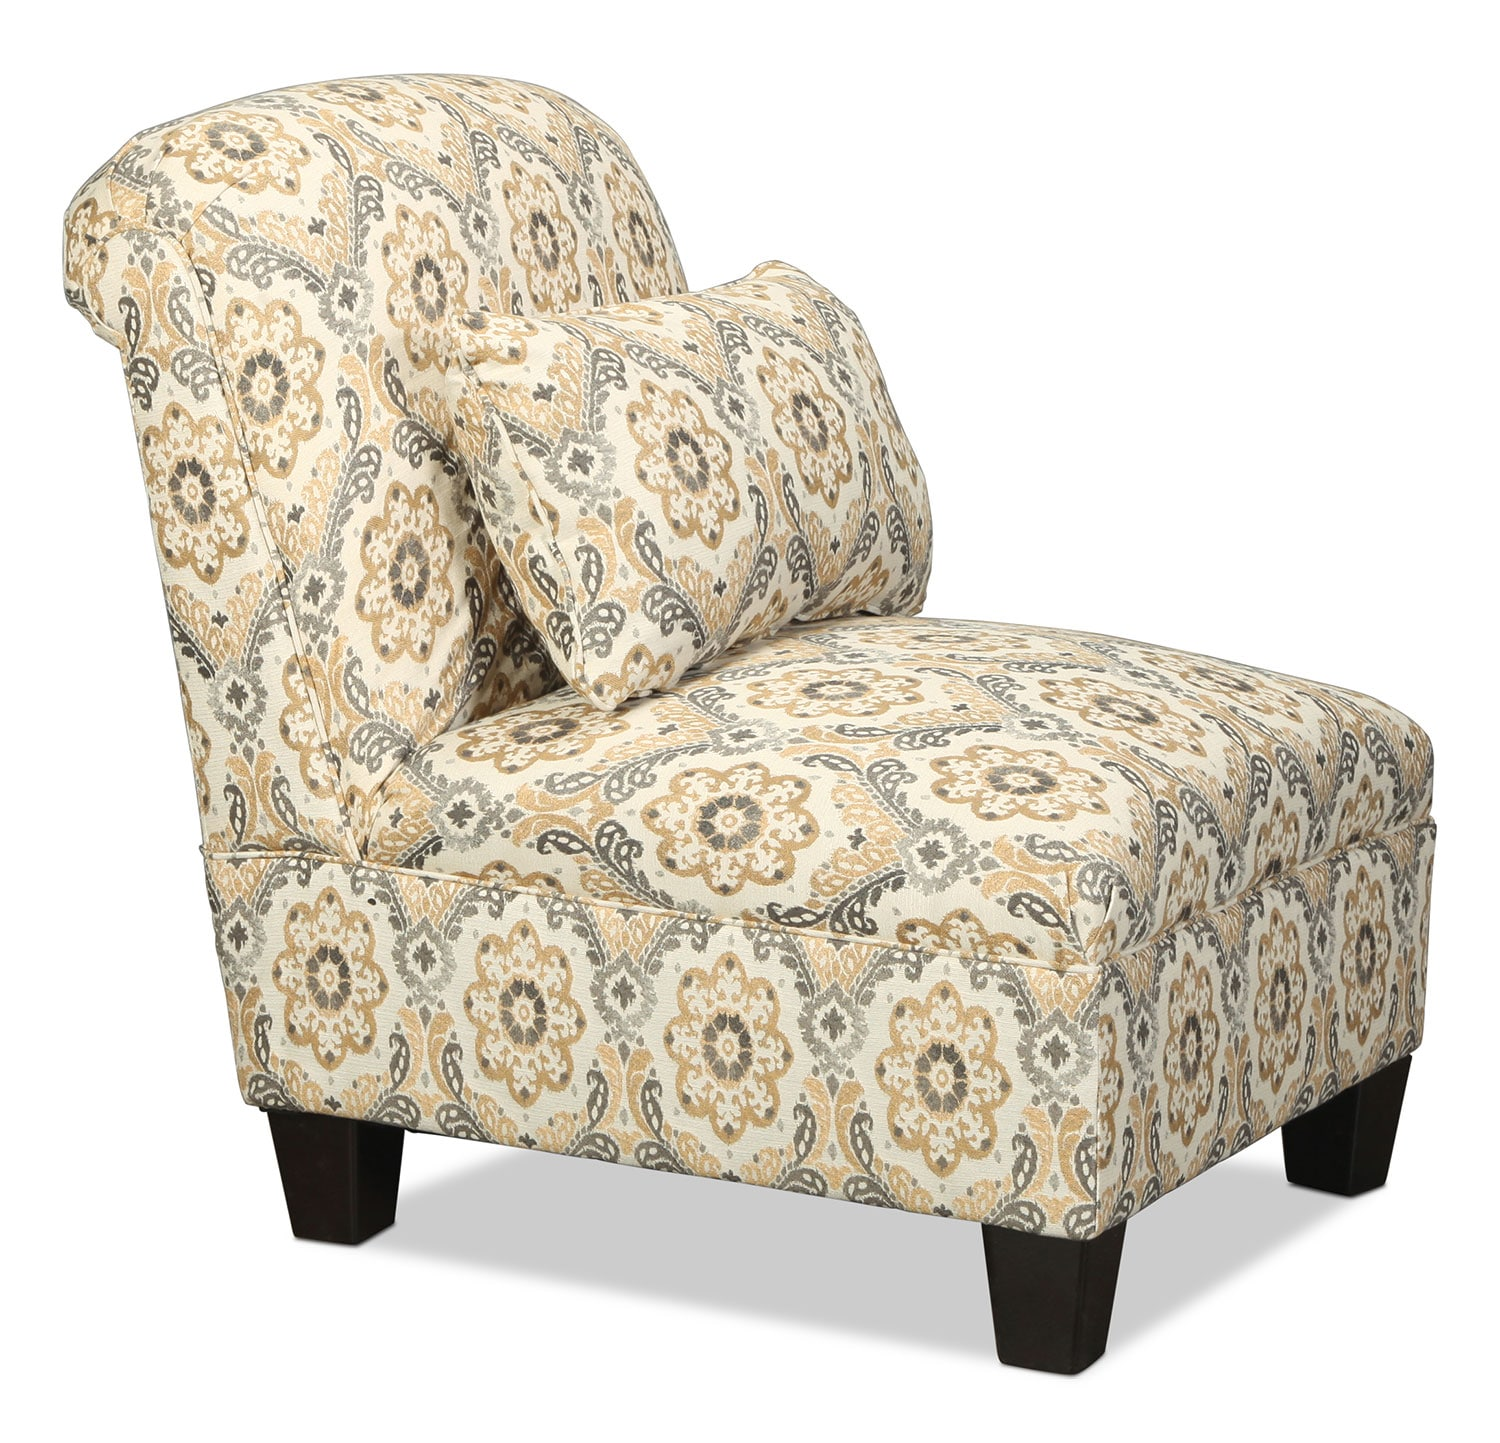 Callie accent chair floral levin furniture for Levin furniture living room chairs